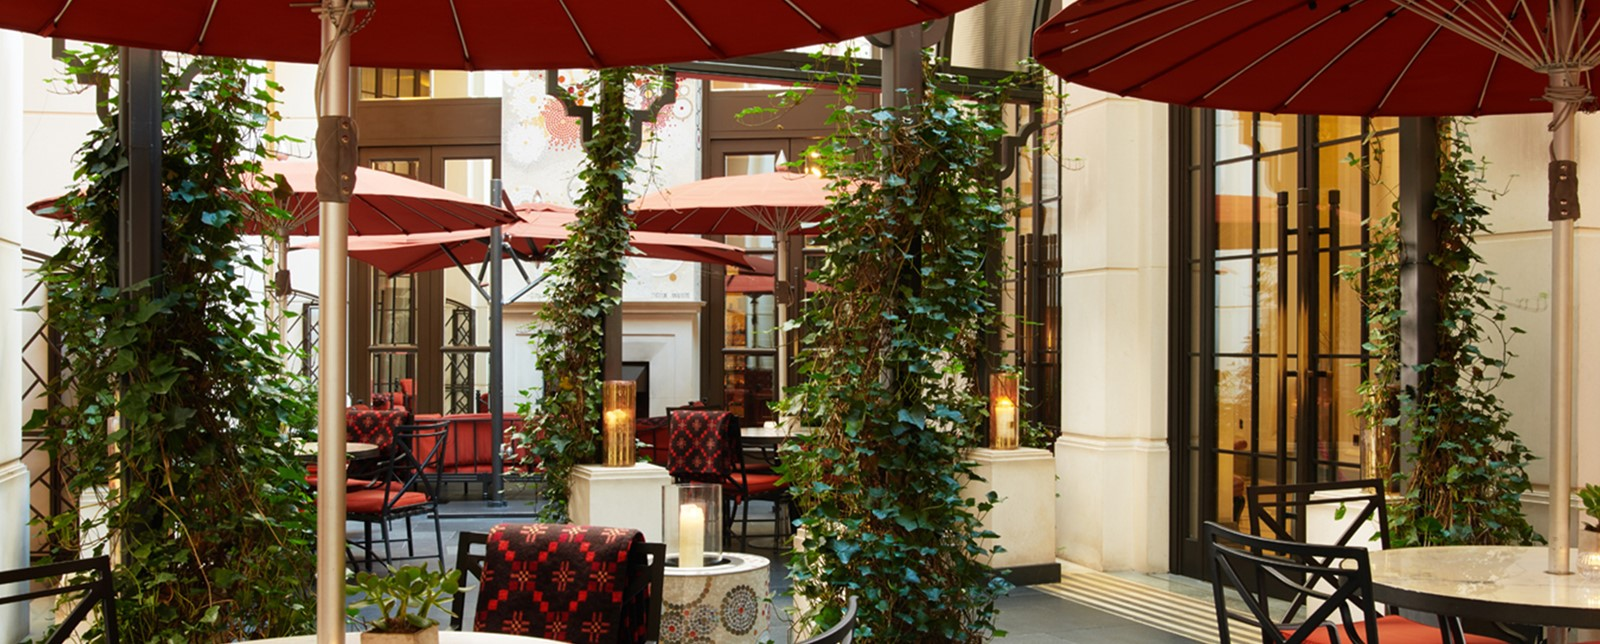 Outdoor seating and tables at the Corinthia London Garden Lounge